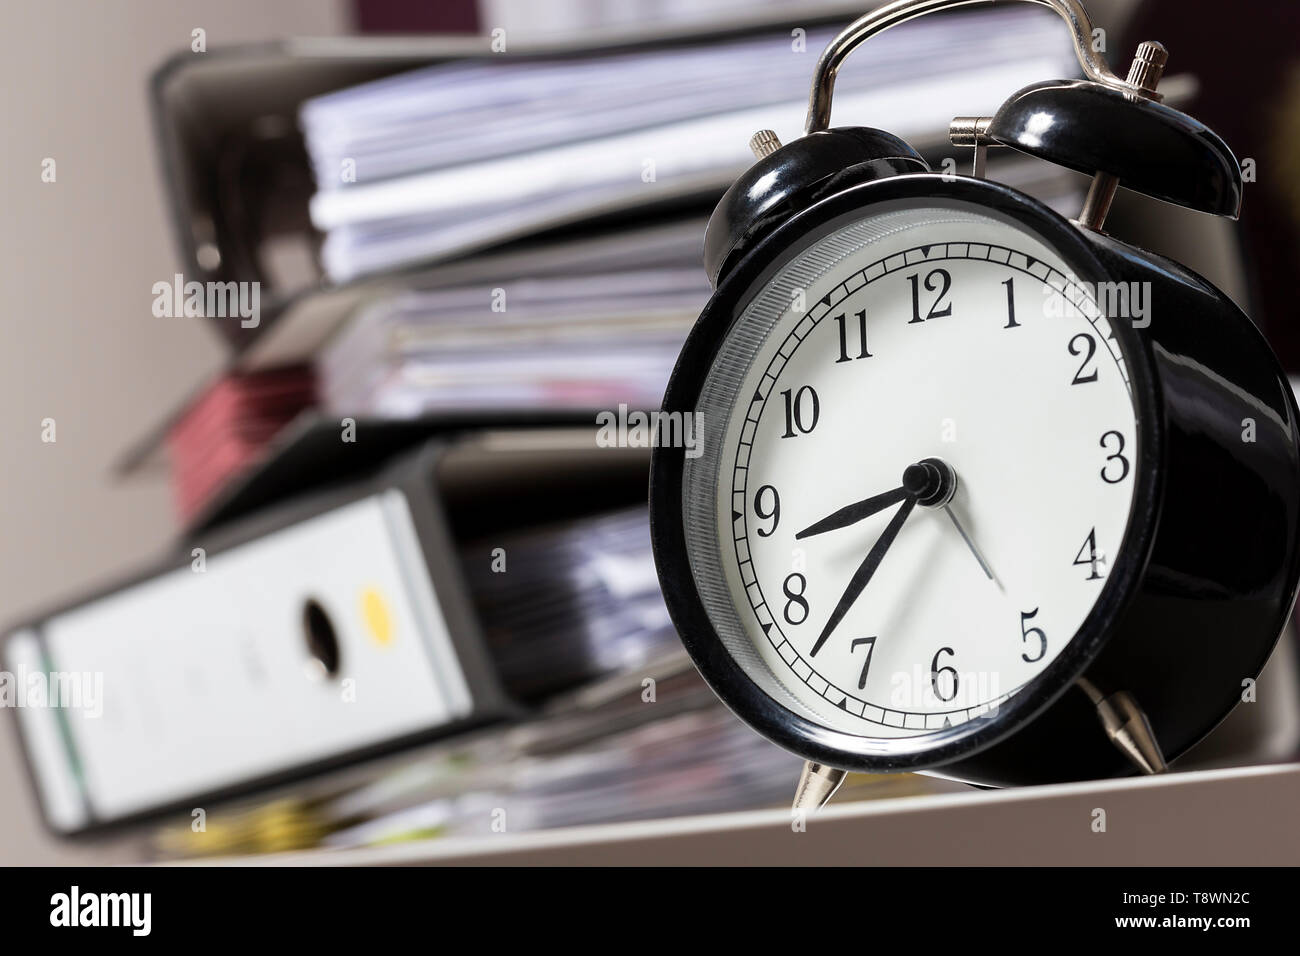 Alarm clock in an office next to a pile of files - Stock Image